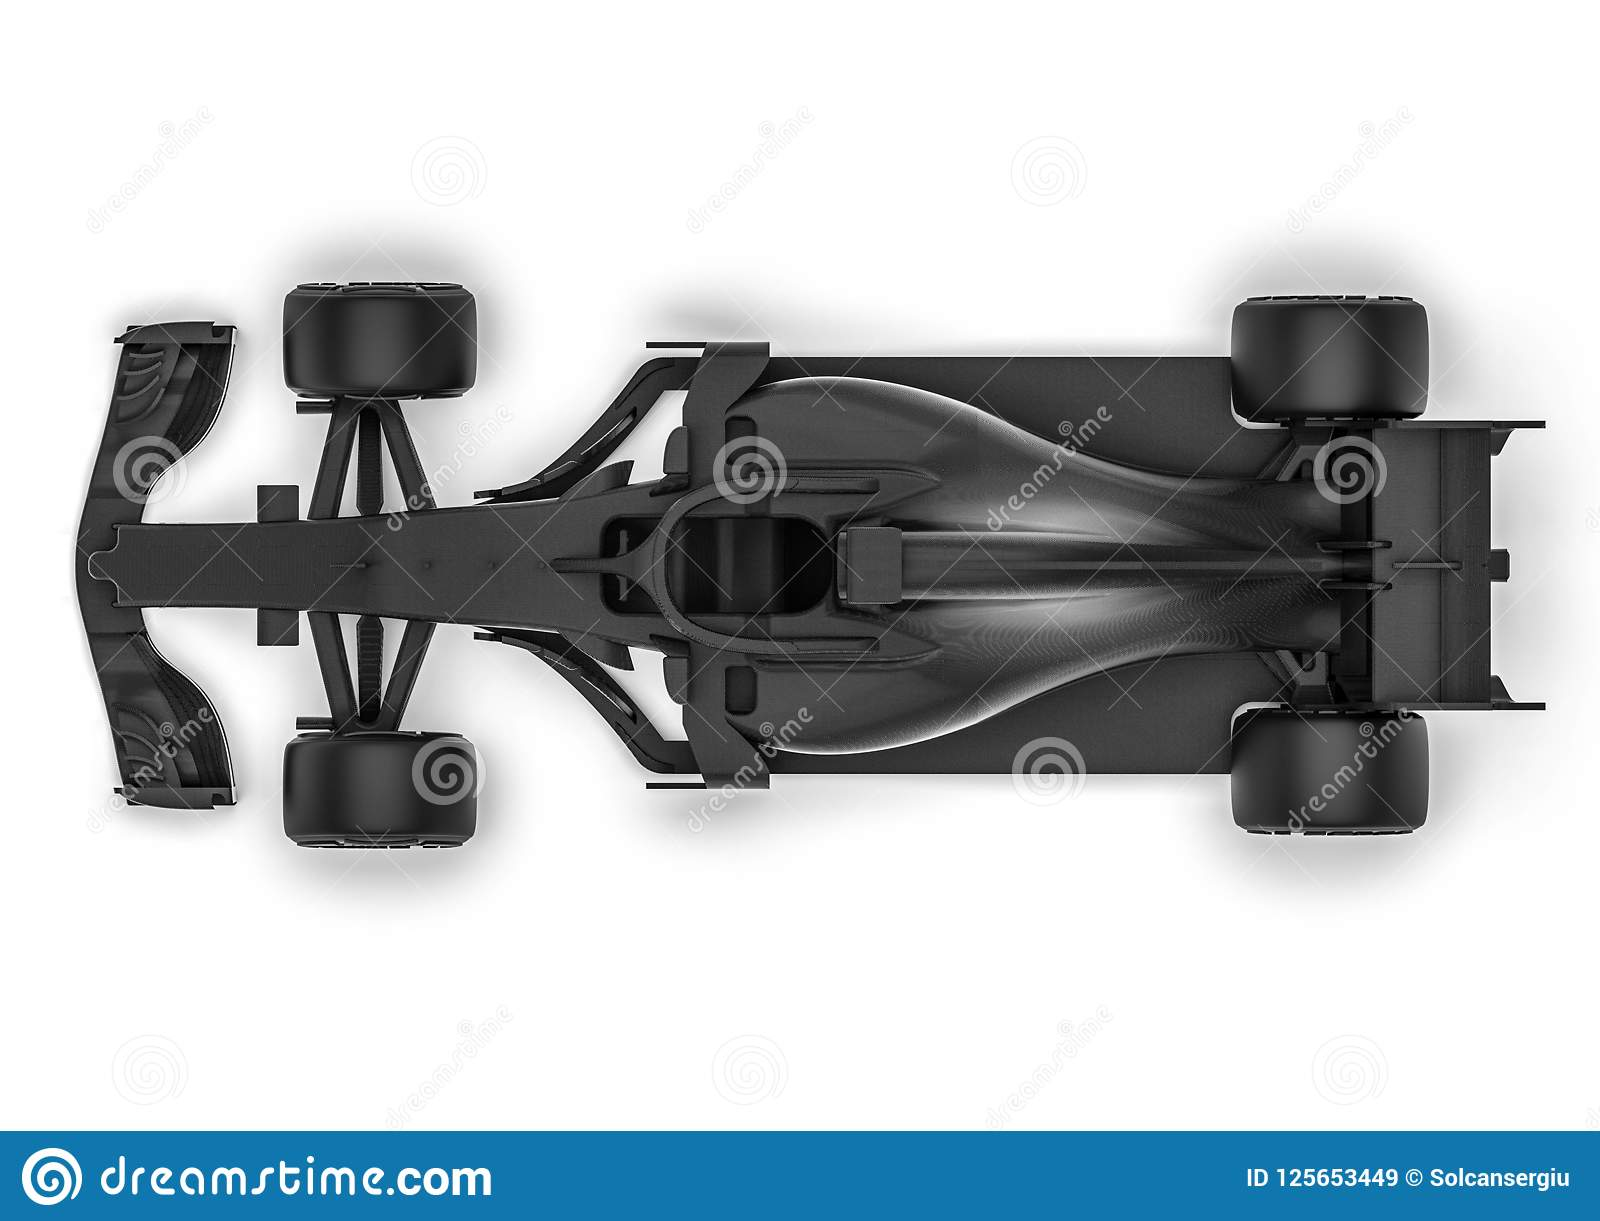 F1 Racer Stock Illustrations 247 F1 Racer Stock Illustrations Vectors Clipart Dreamstime